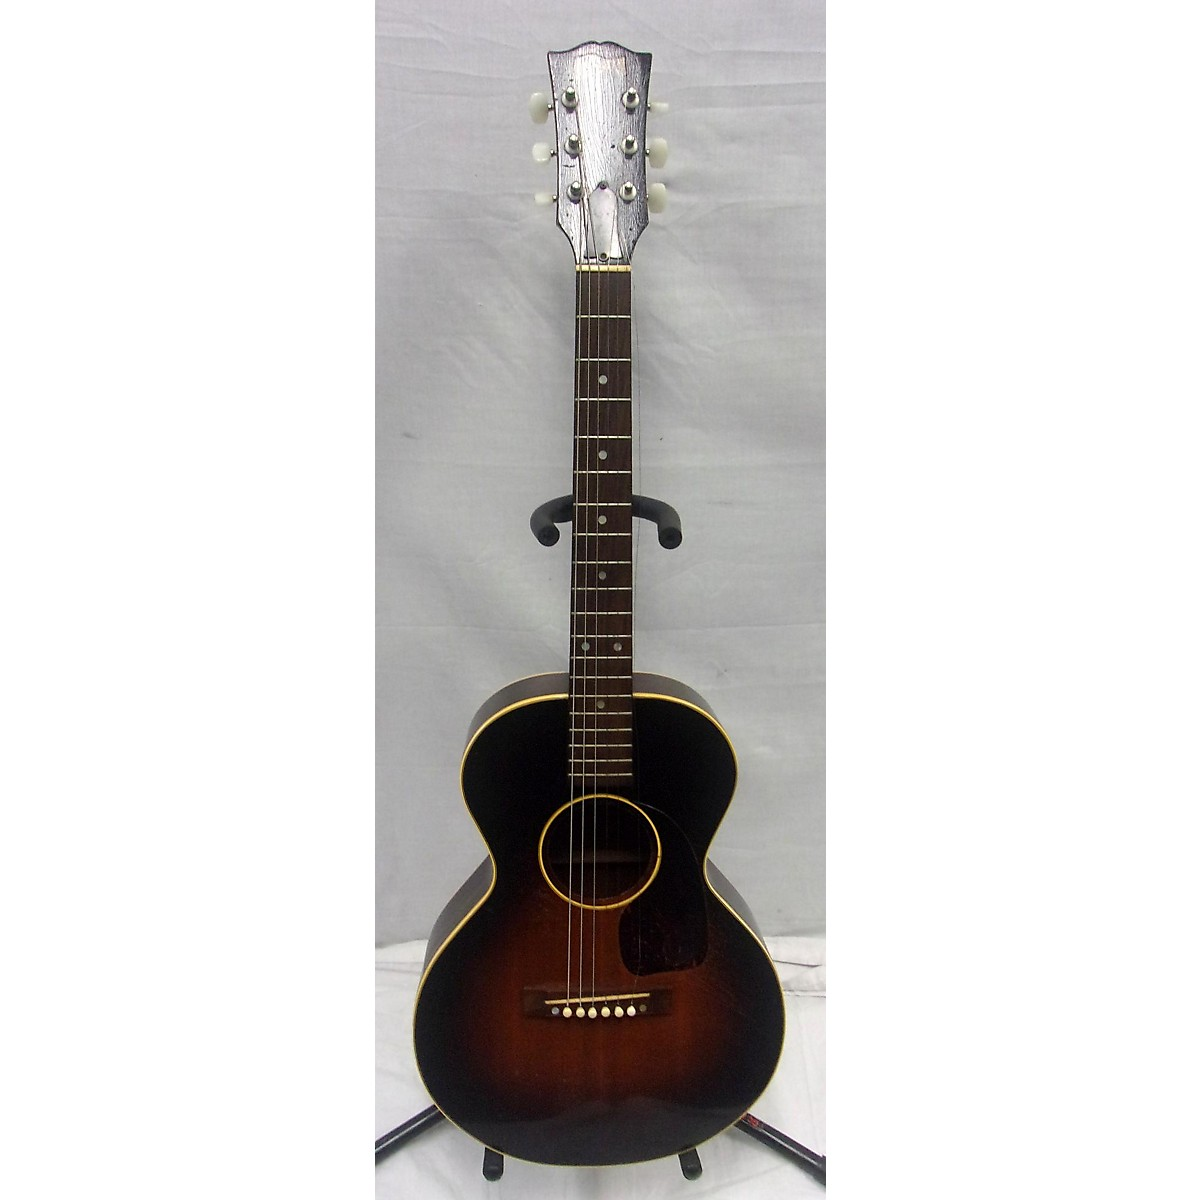 Gibson 1950 LG2 American Eagle Acoustic Electric Guitar